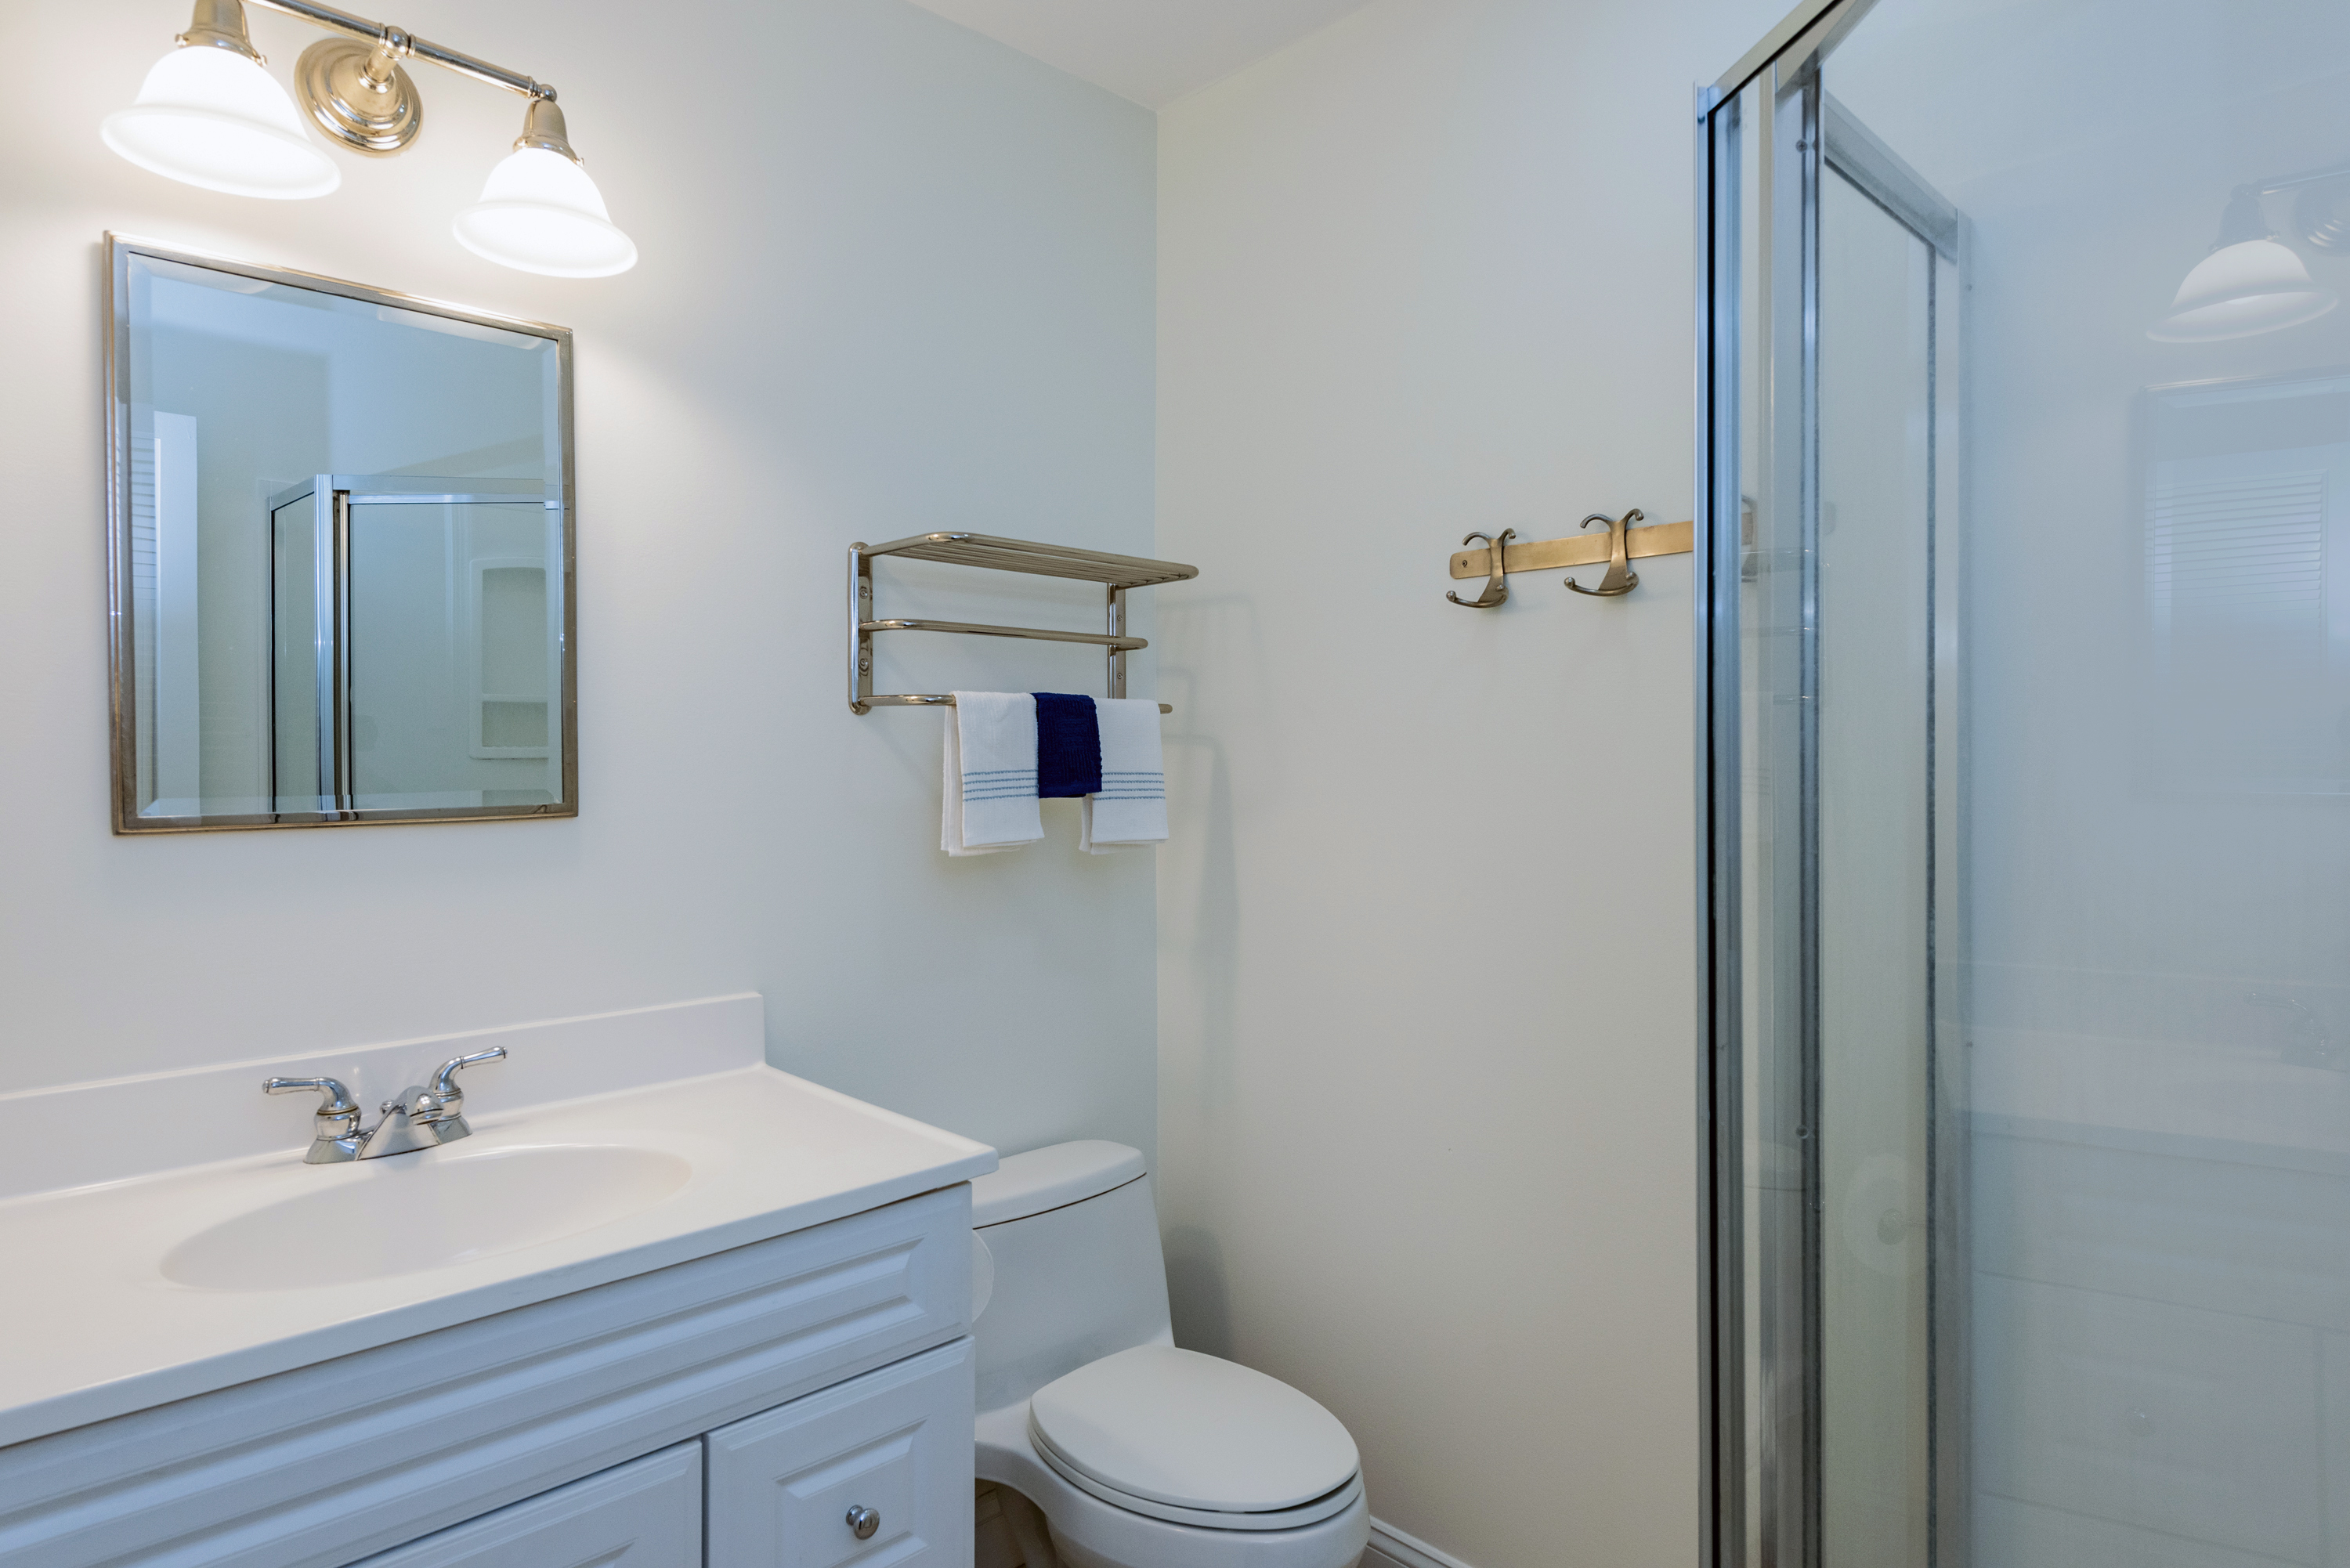 Full hall bathroom with shower